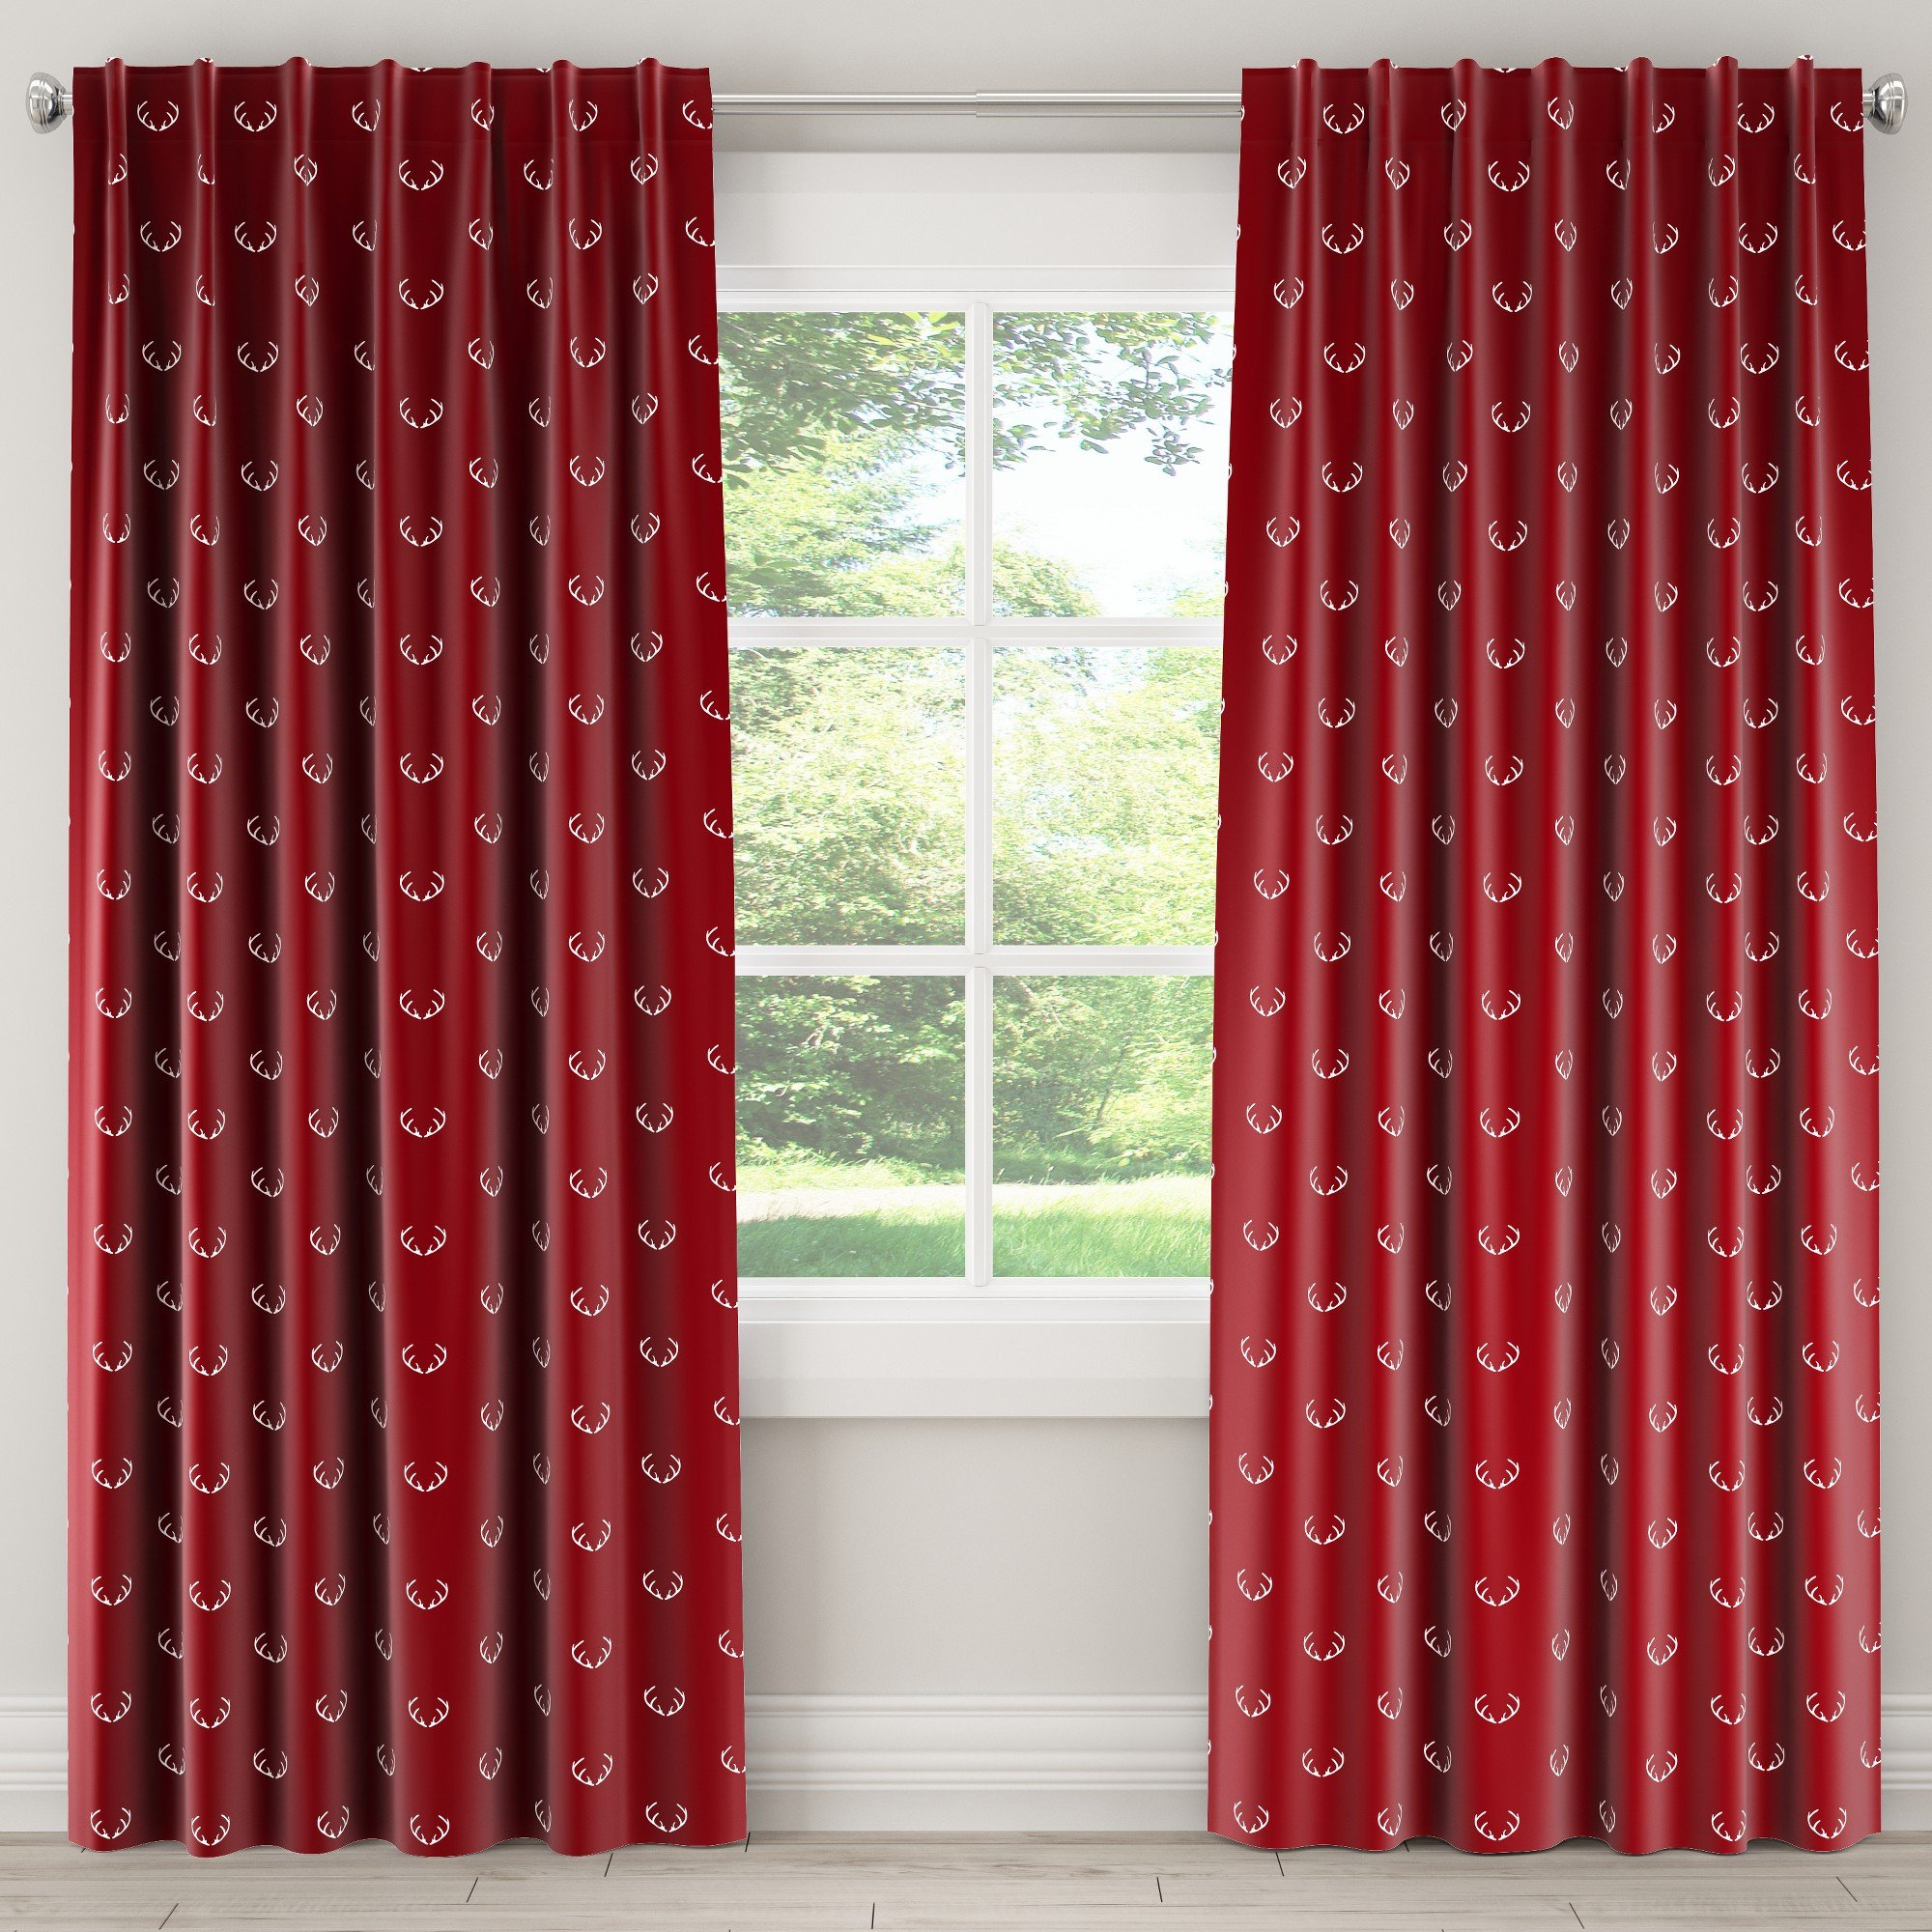 Burgundy Curtains for Bedroom Inspirational Unlined Curtains Antler Maroon Red 108l Skyline